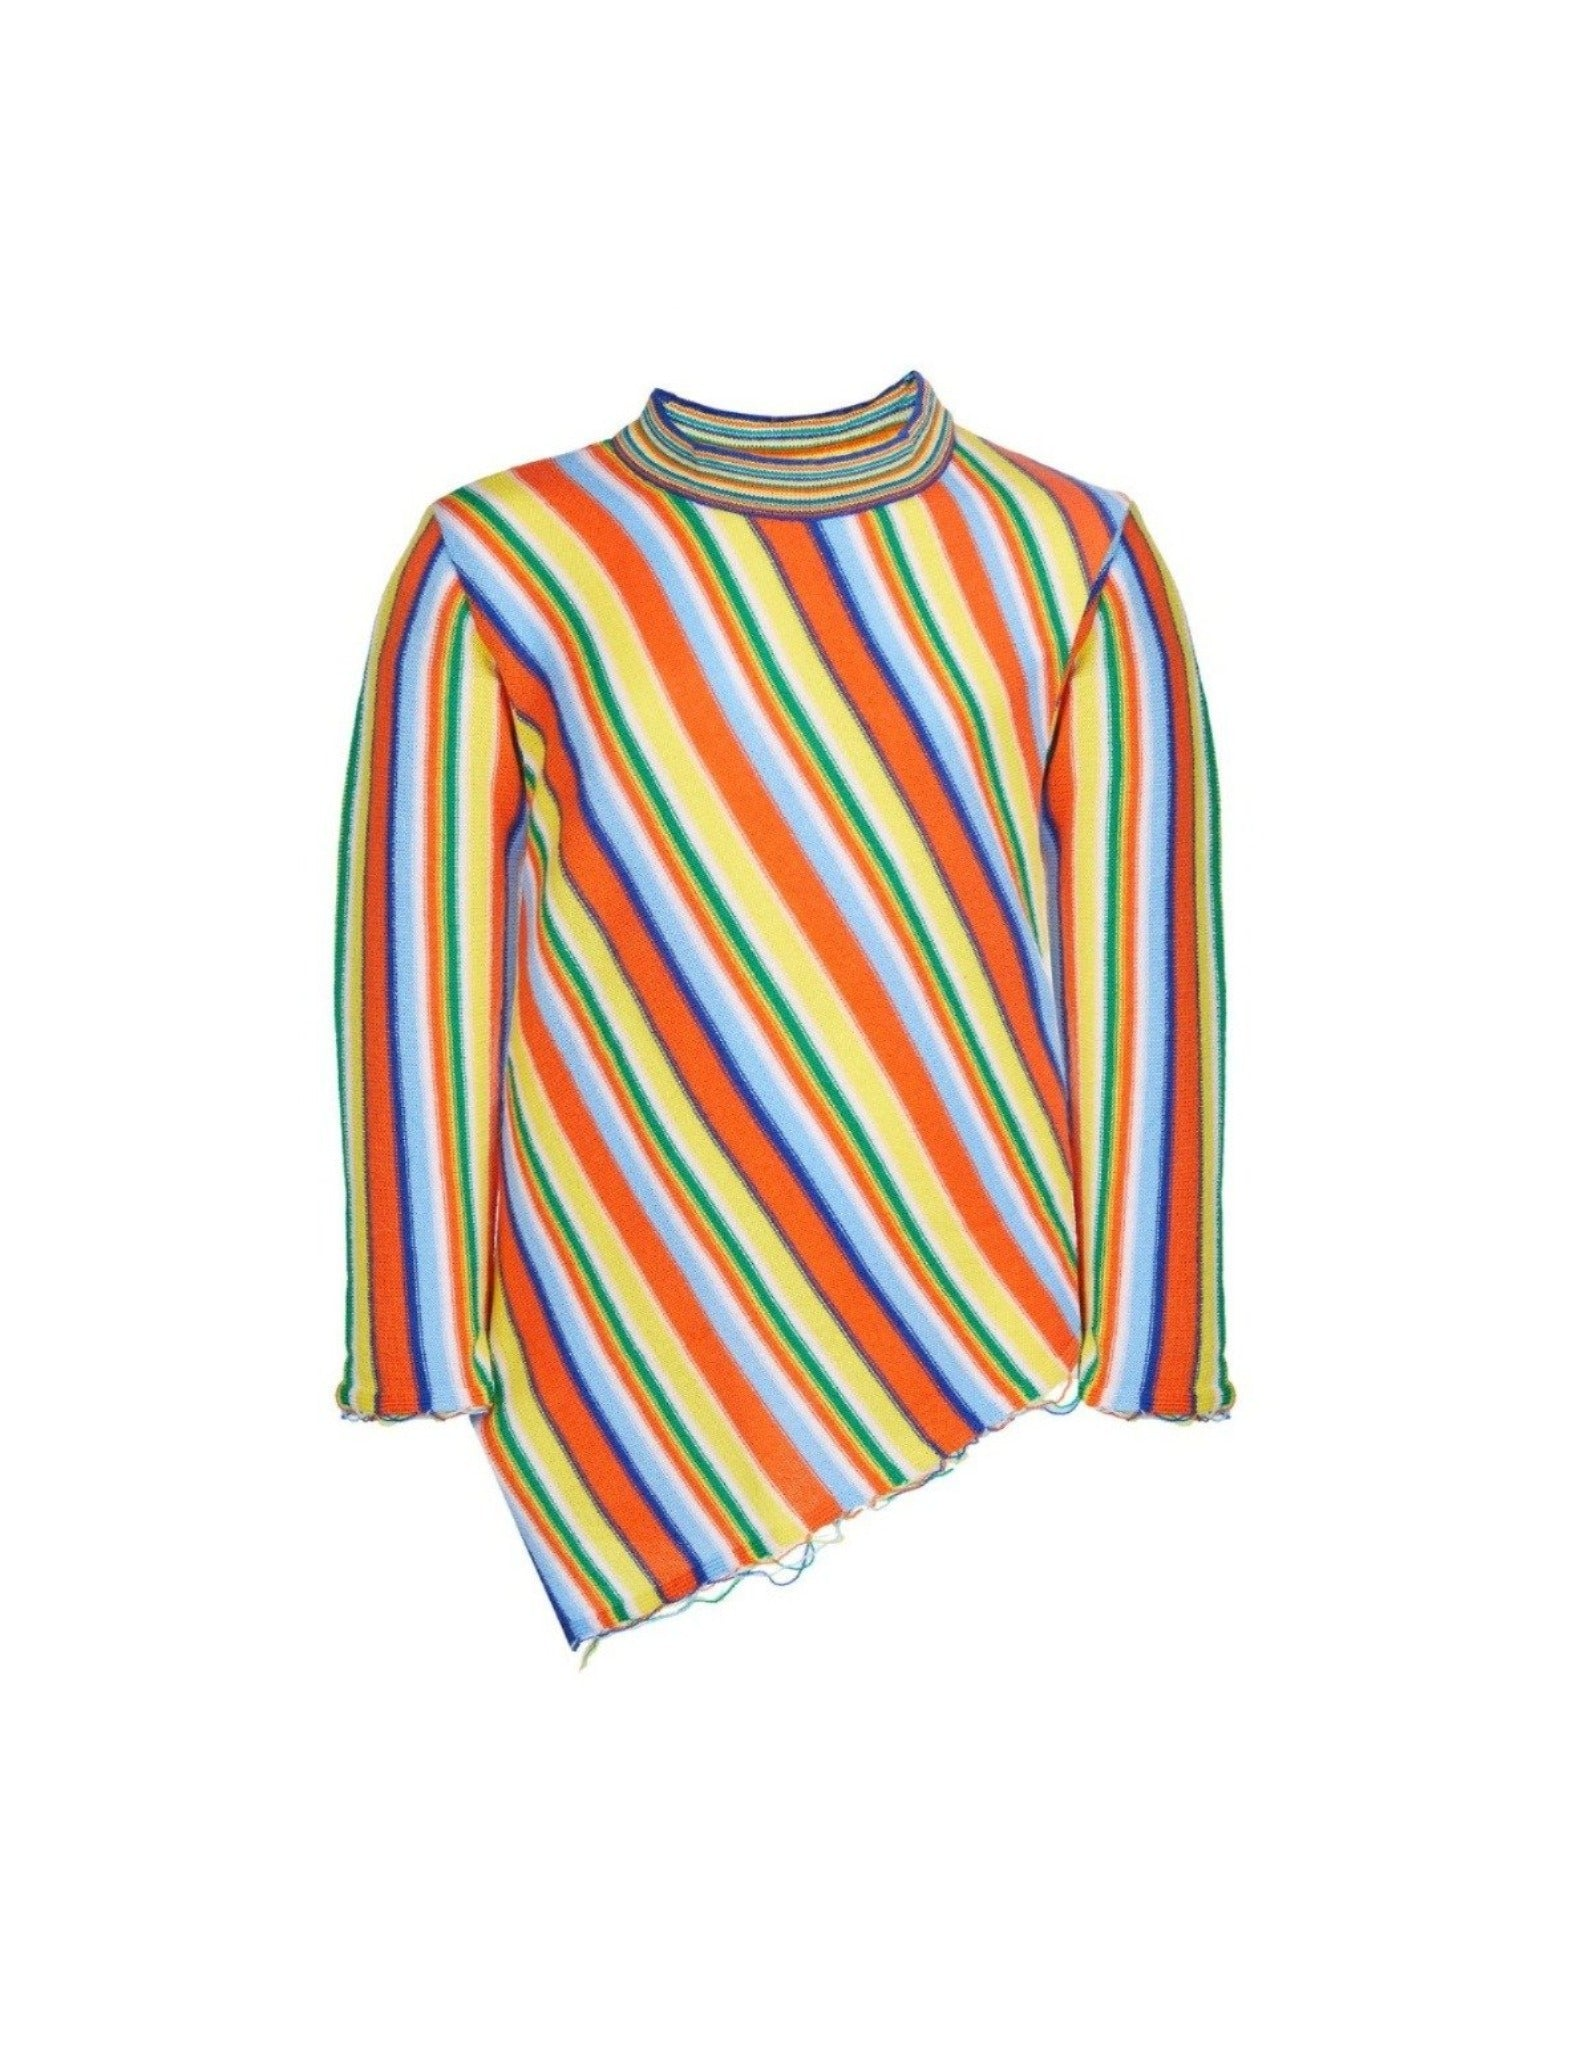 M'A KIDS ASYMETRIC CREW NECK IN MULTI STRIPES